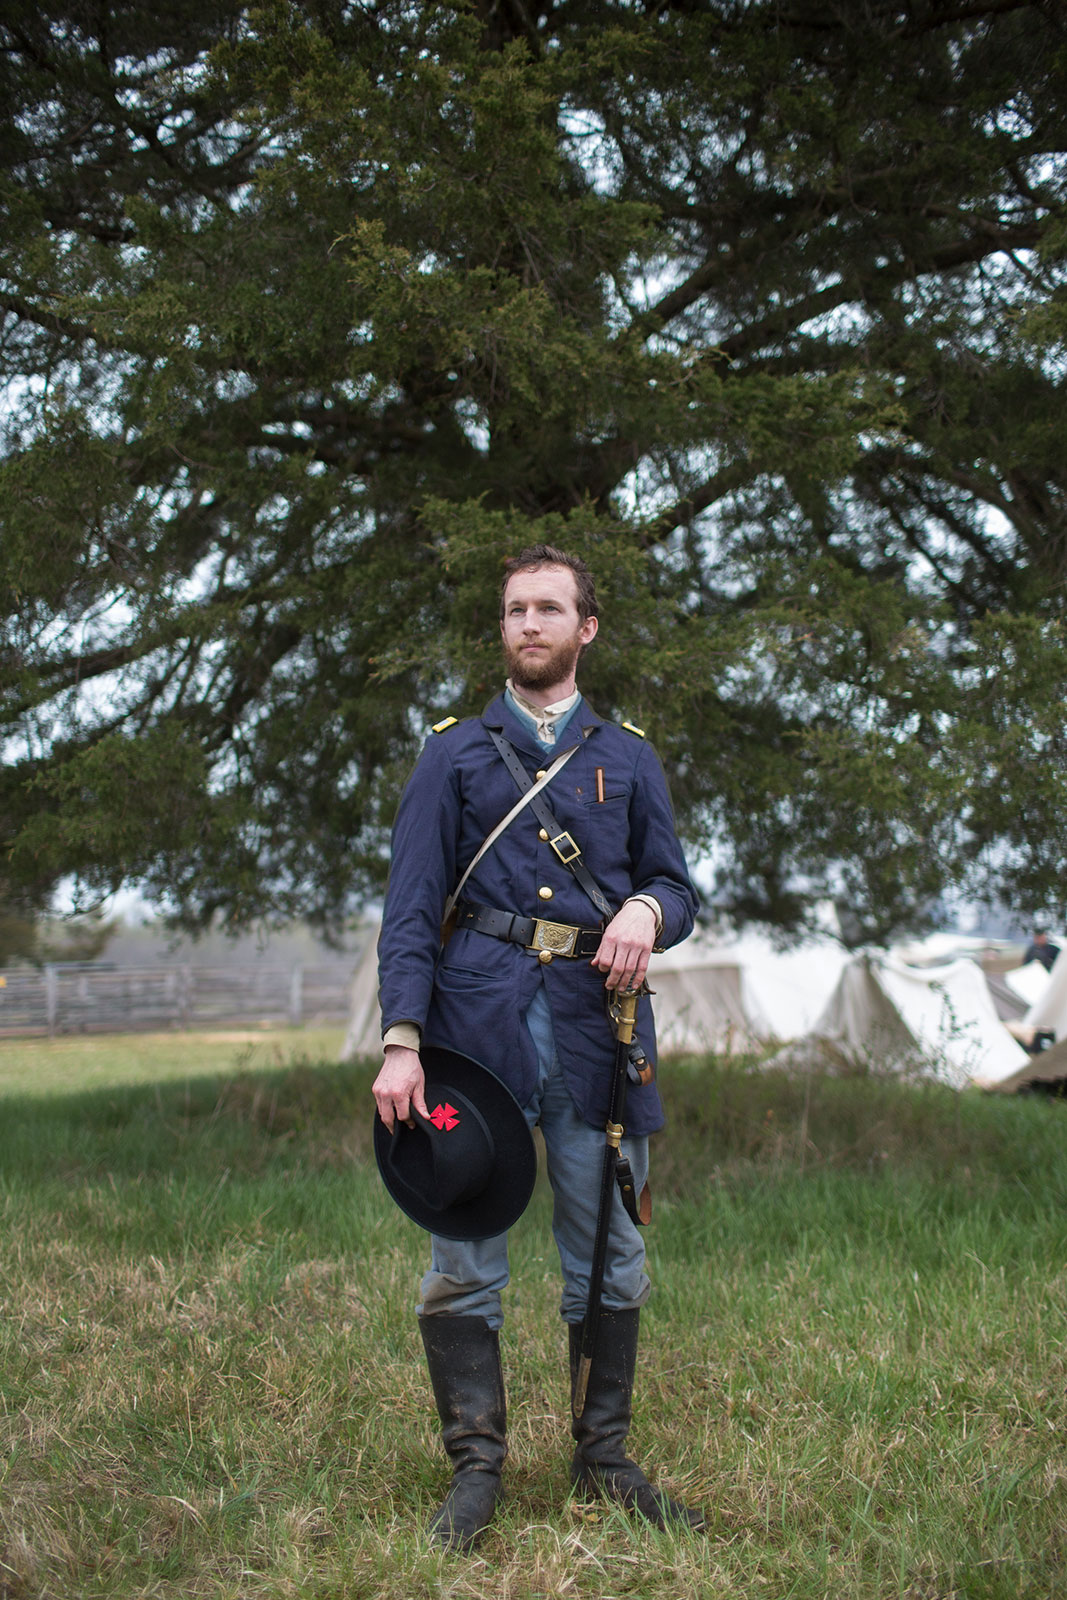 Tyler, a Union reenactor from Delaware participates in events at Appomattox Court House, Virginia.